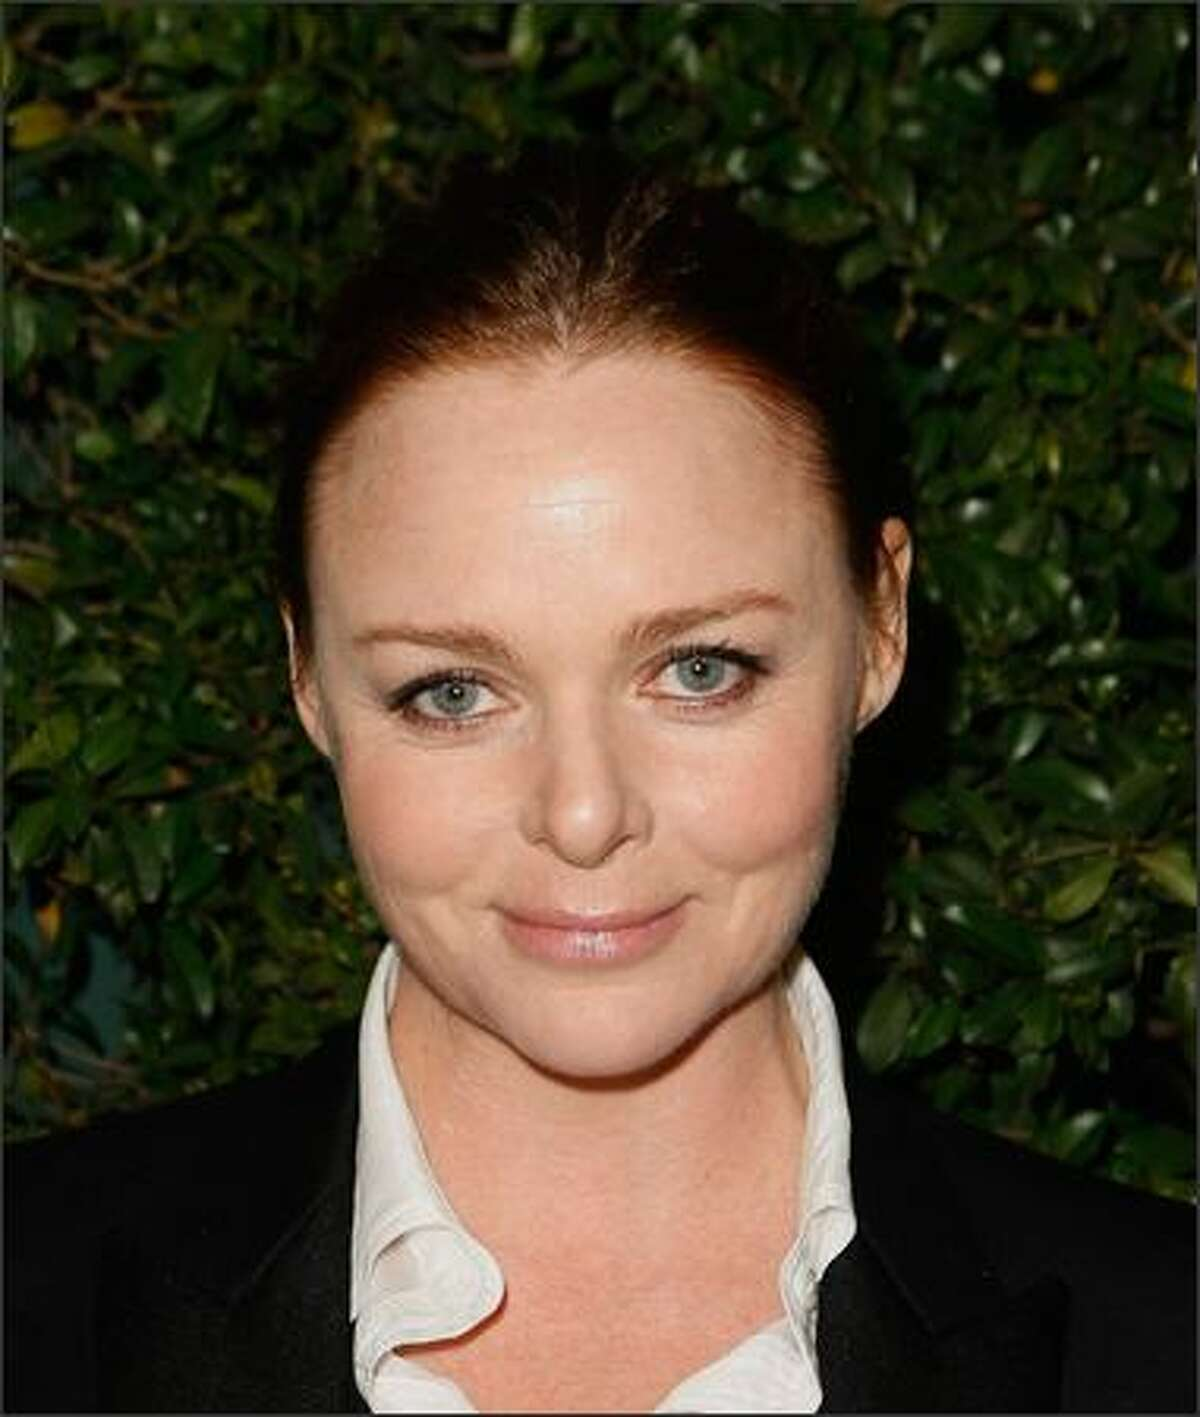 Designer Stella McCartney arrives at the screening of